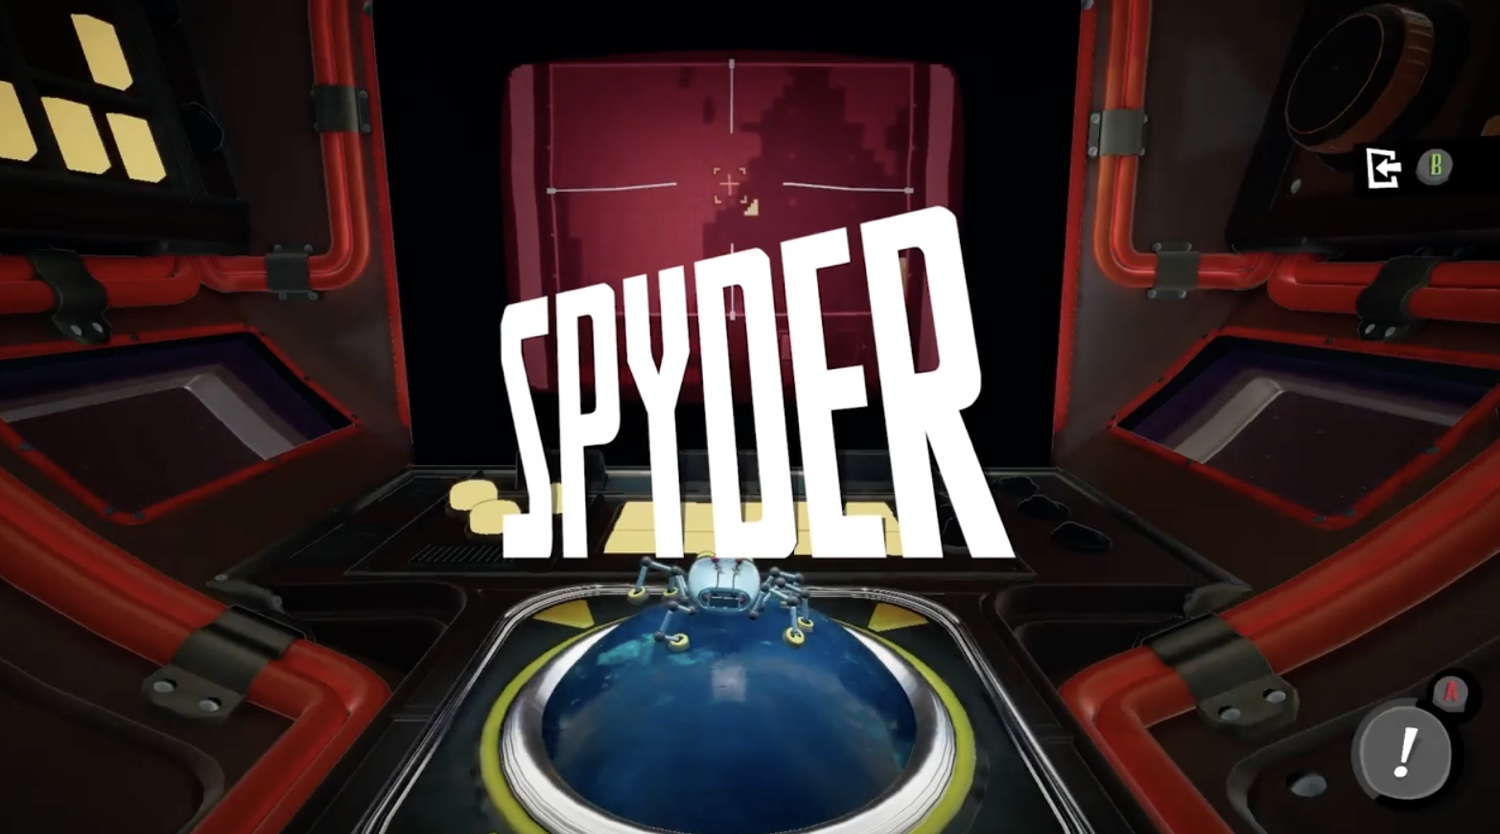 Spy Adventure Game 'Spyder' Now Available on Apple Arcade